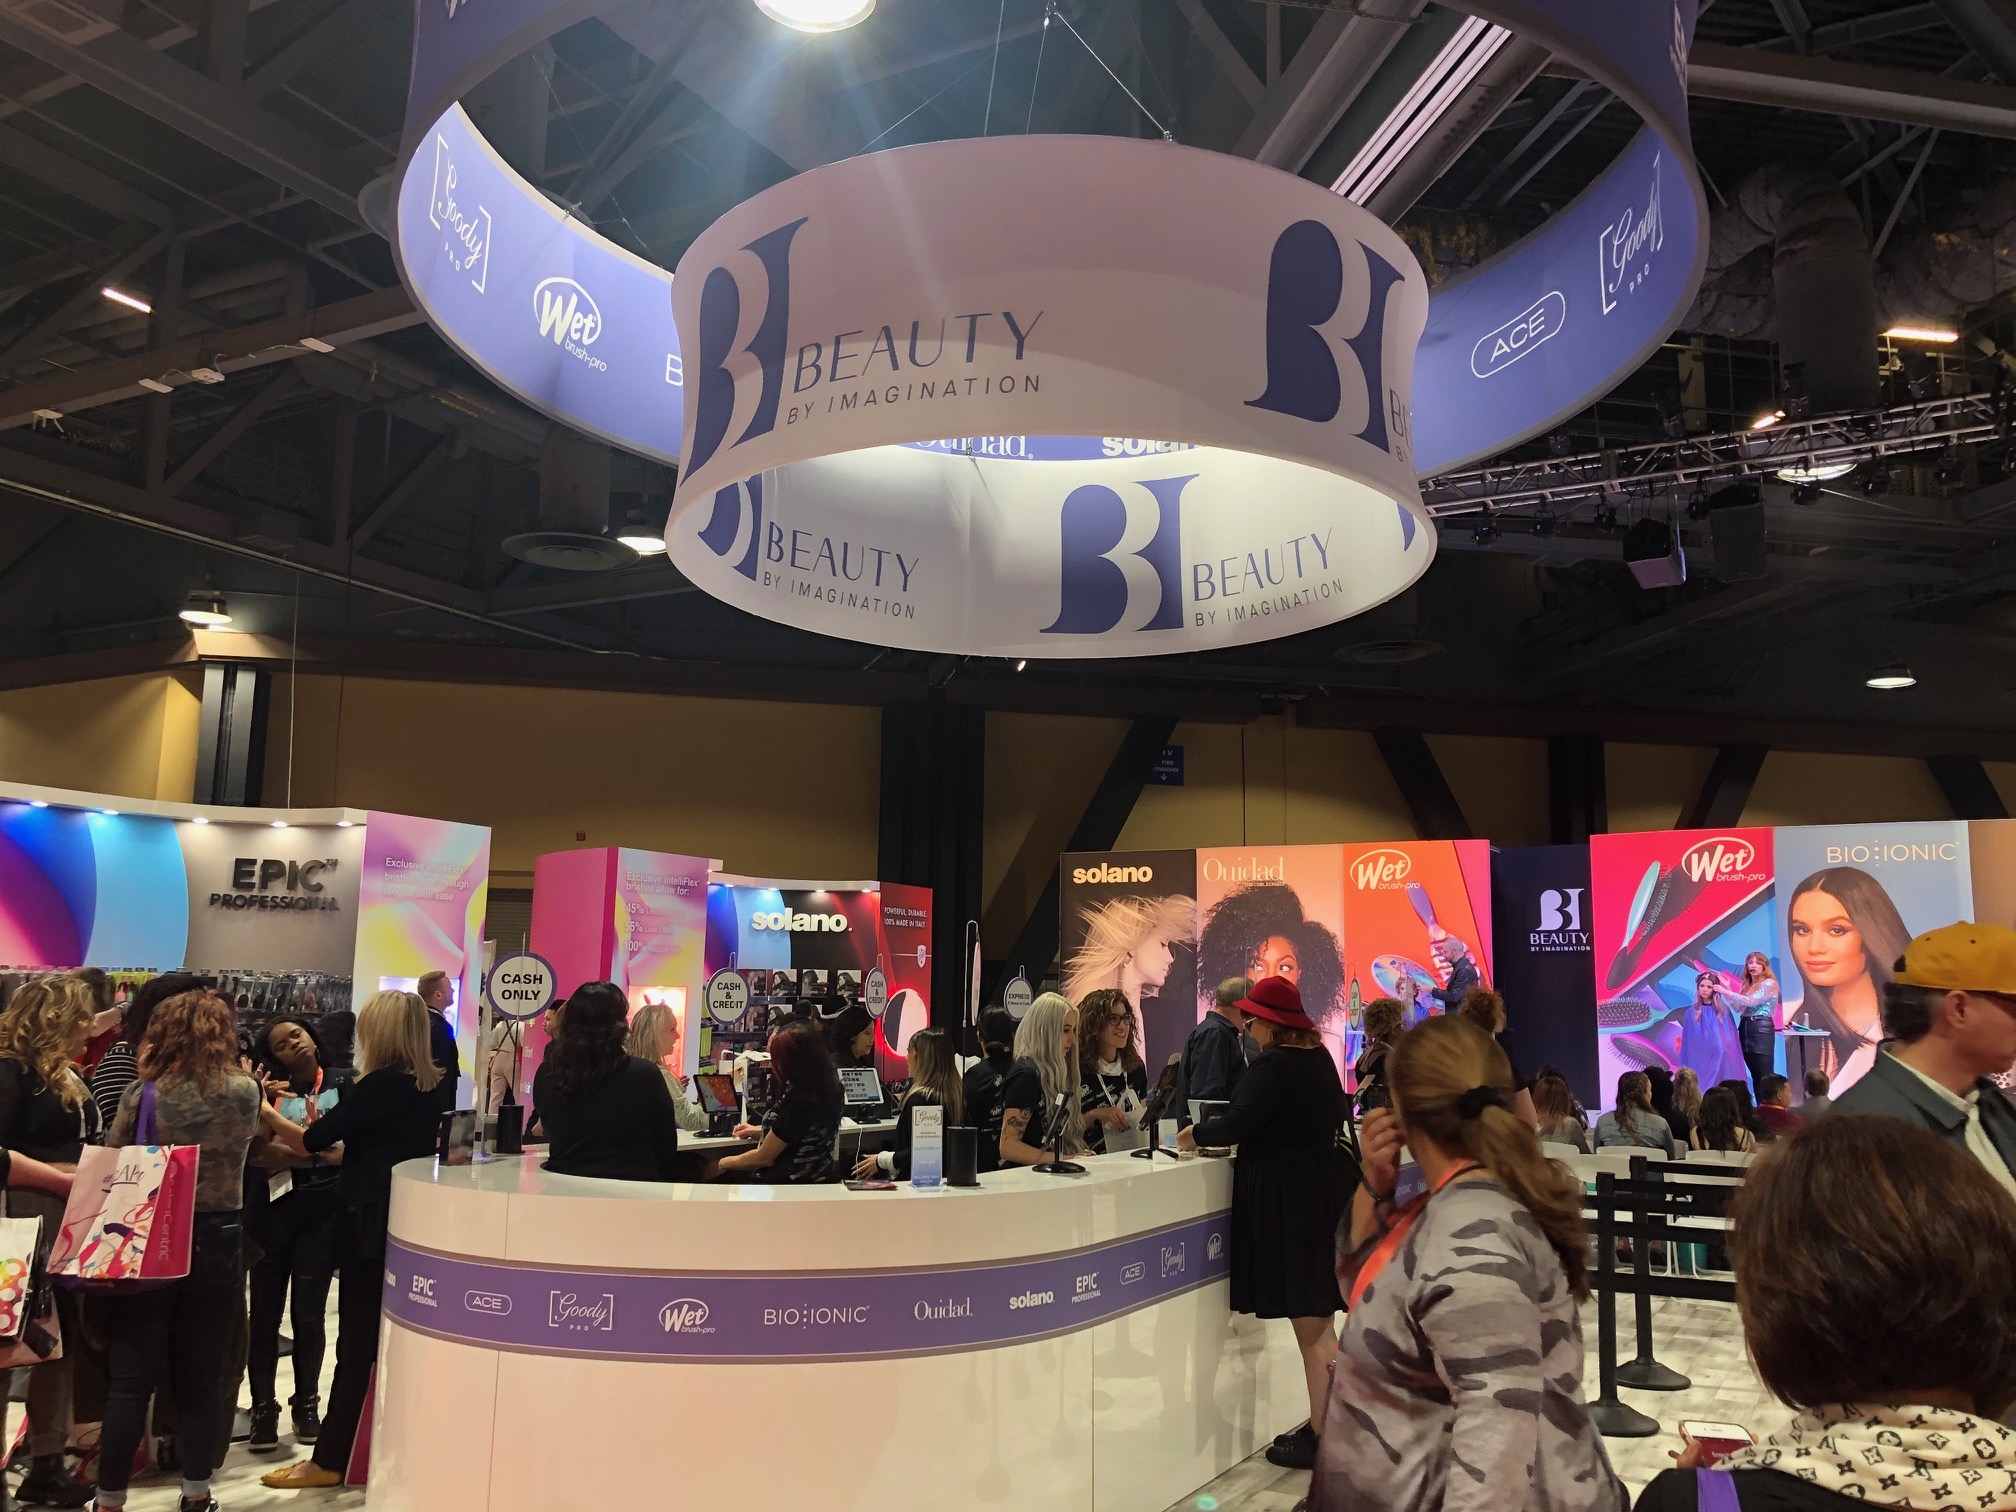 Beauty-Full: New Beauty by Imagination Debuts at ISSE